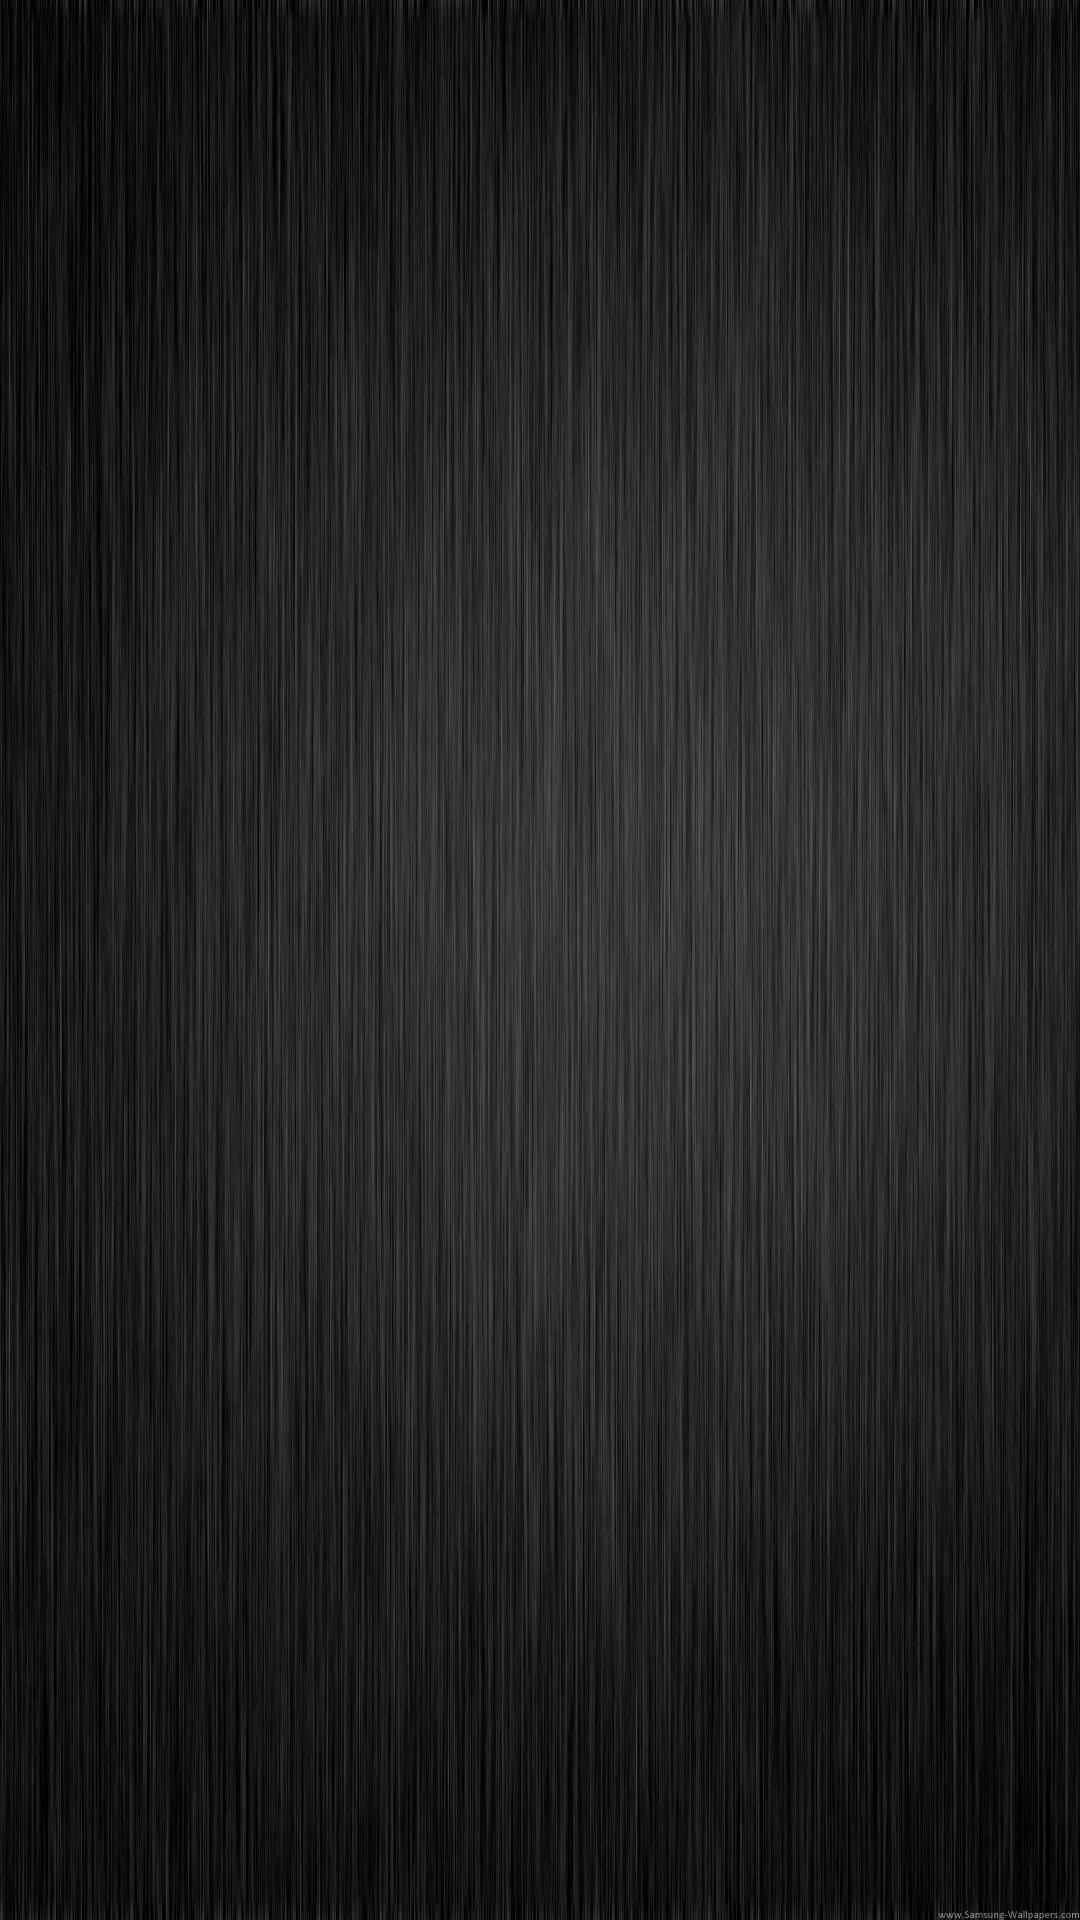 1080x1920 black and gray wallpaper for android backgrounds for android